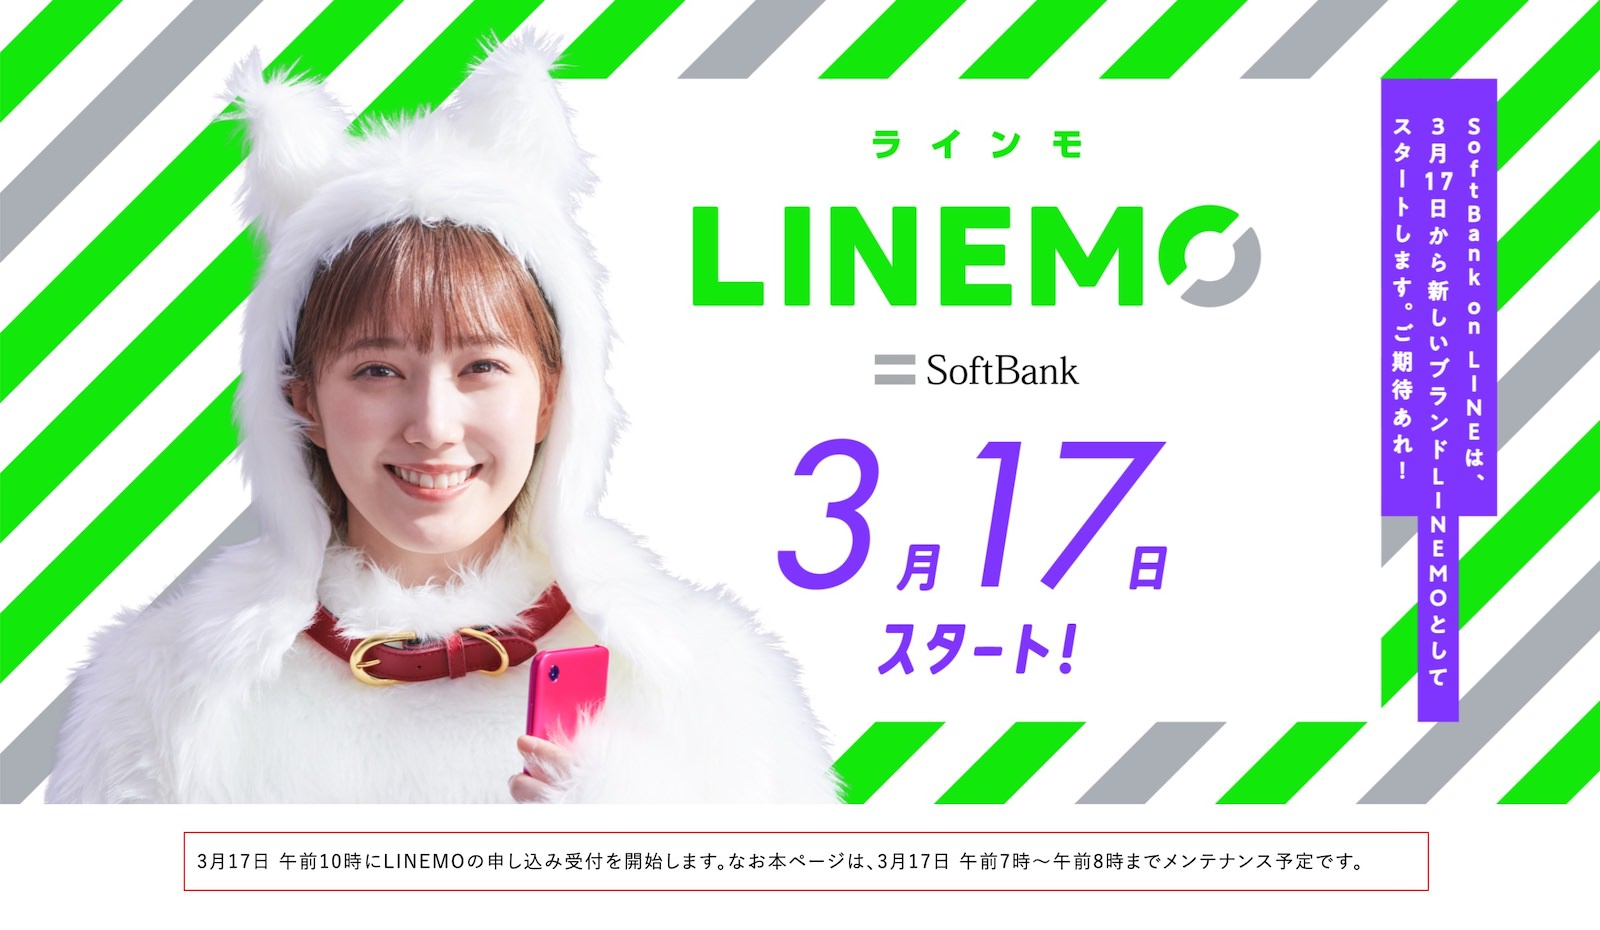 Linemo start march17